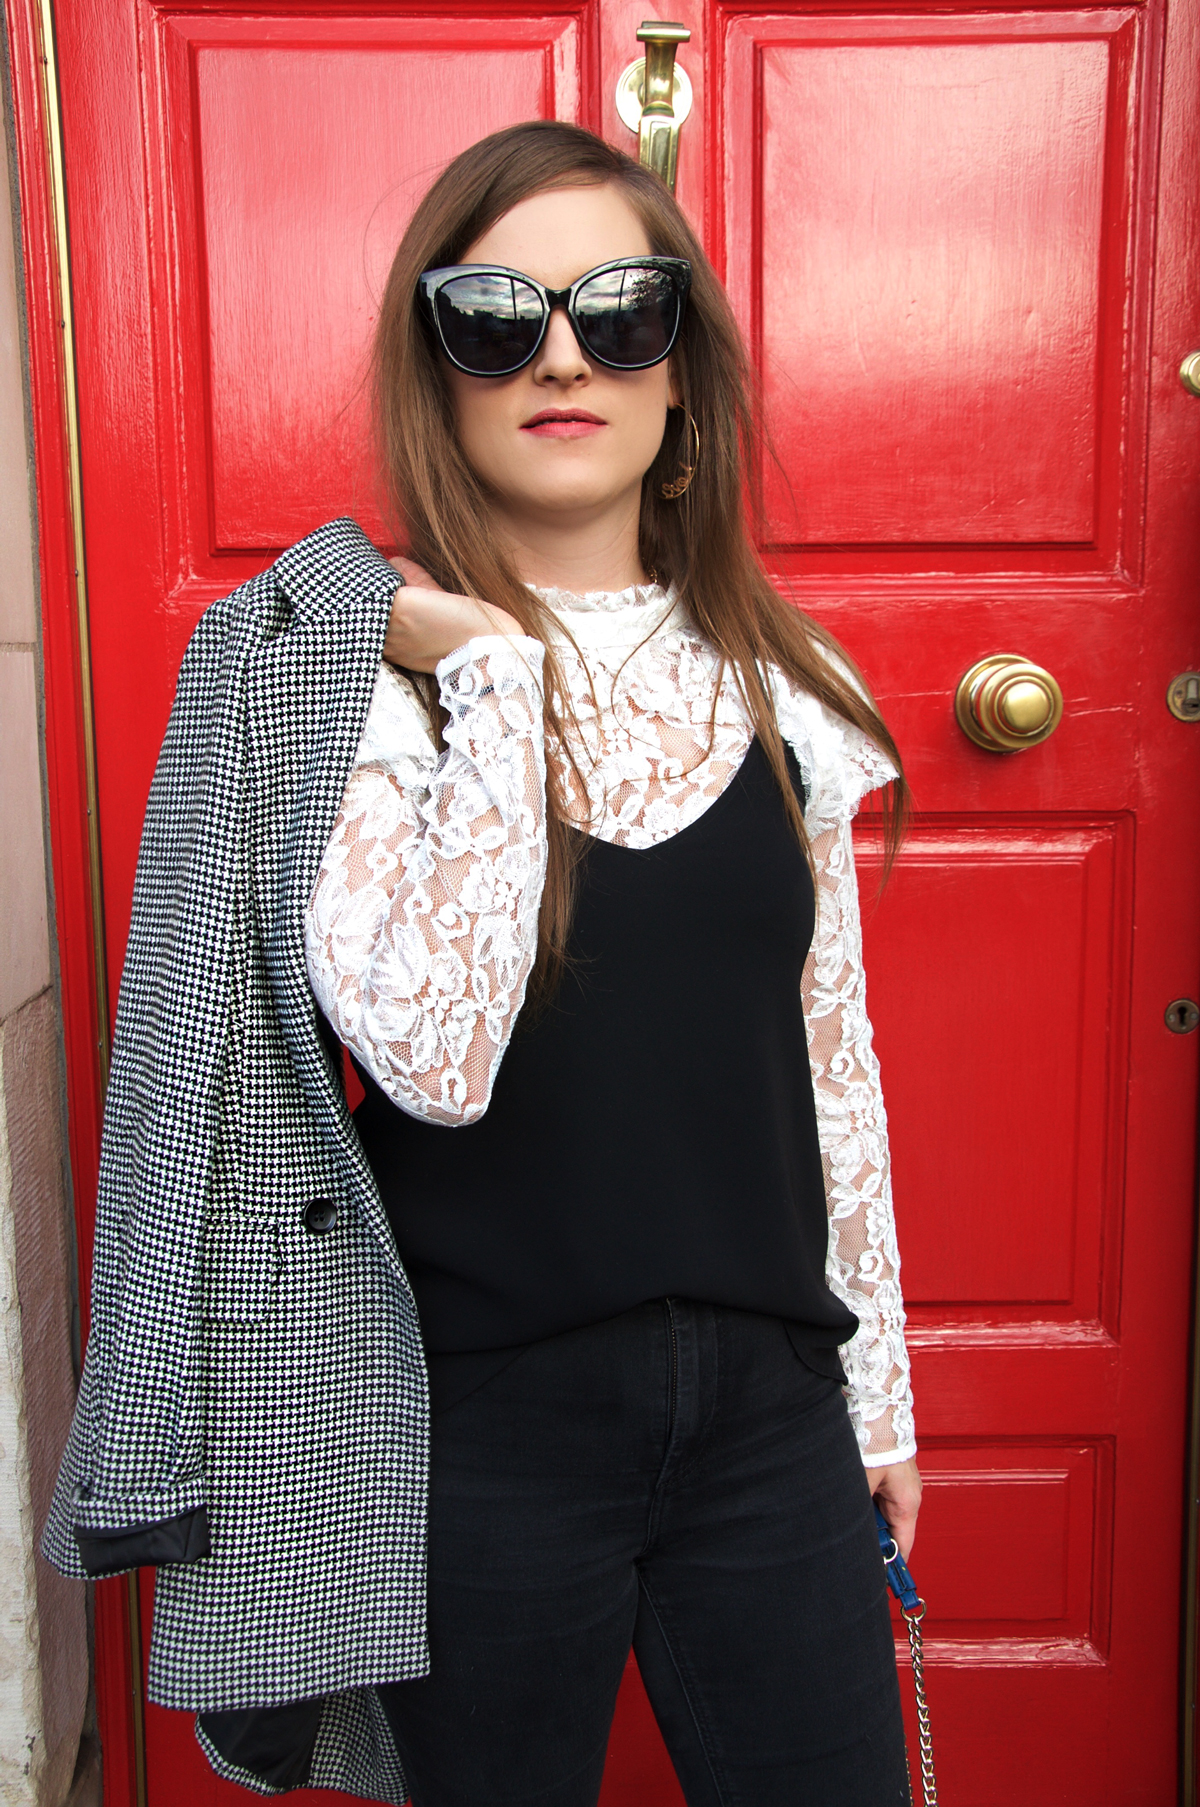 Fashion blog, Strawberries & Champagne by Andrea Steiner says what she love about Layering Look.